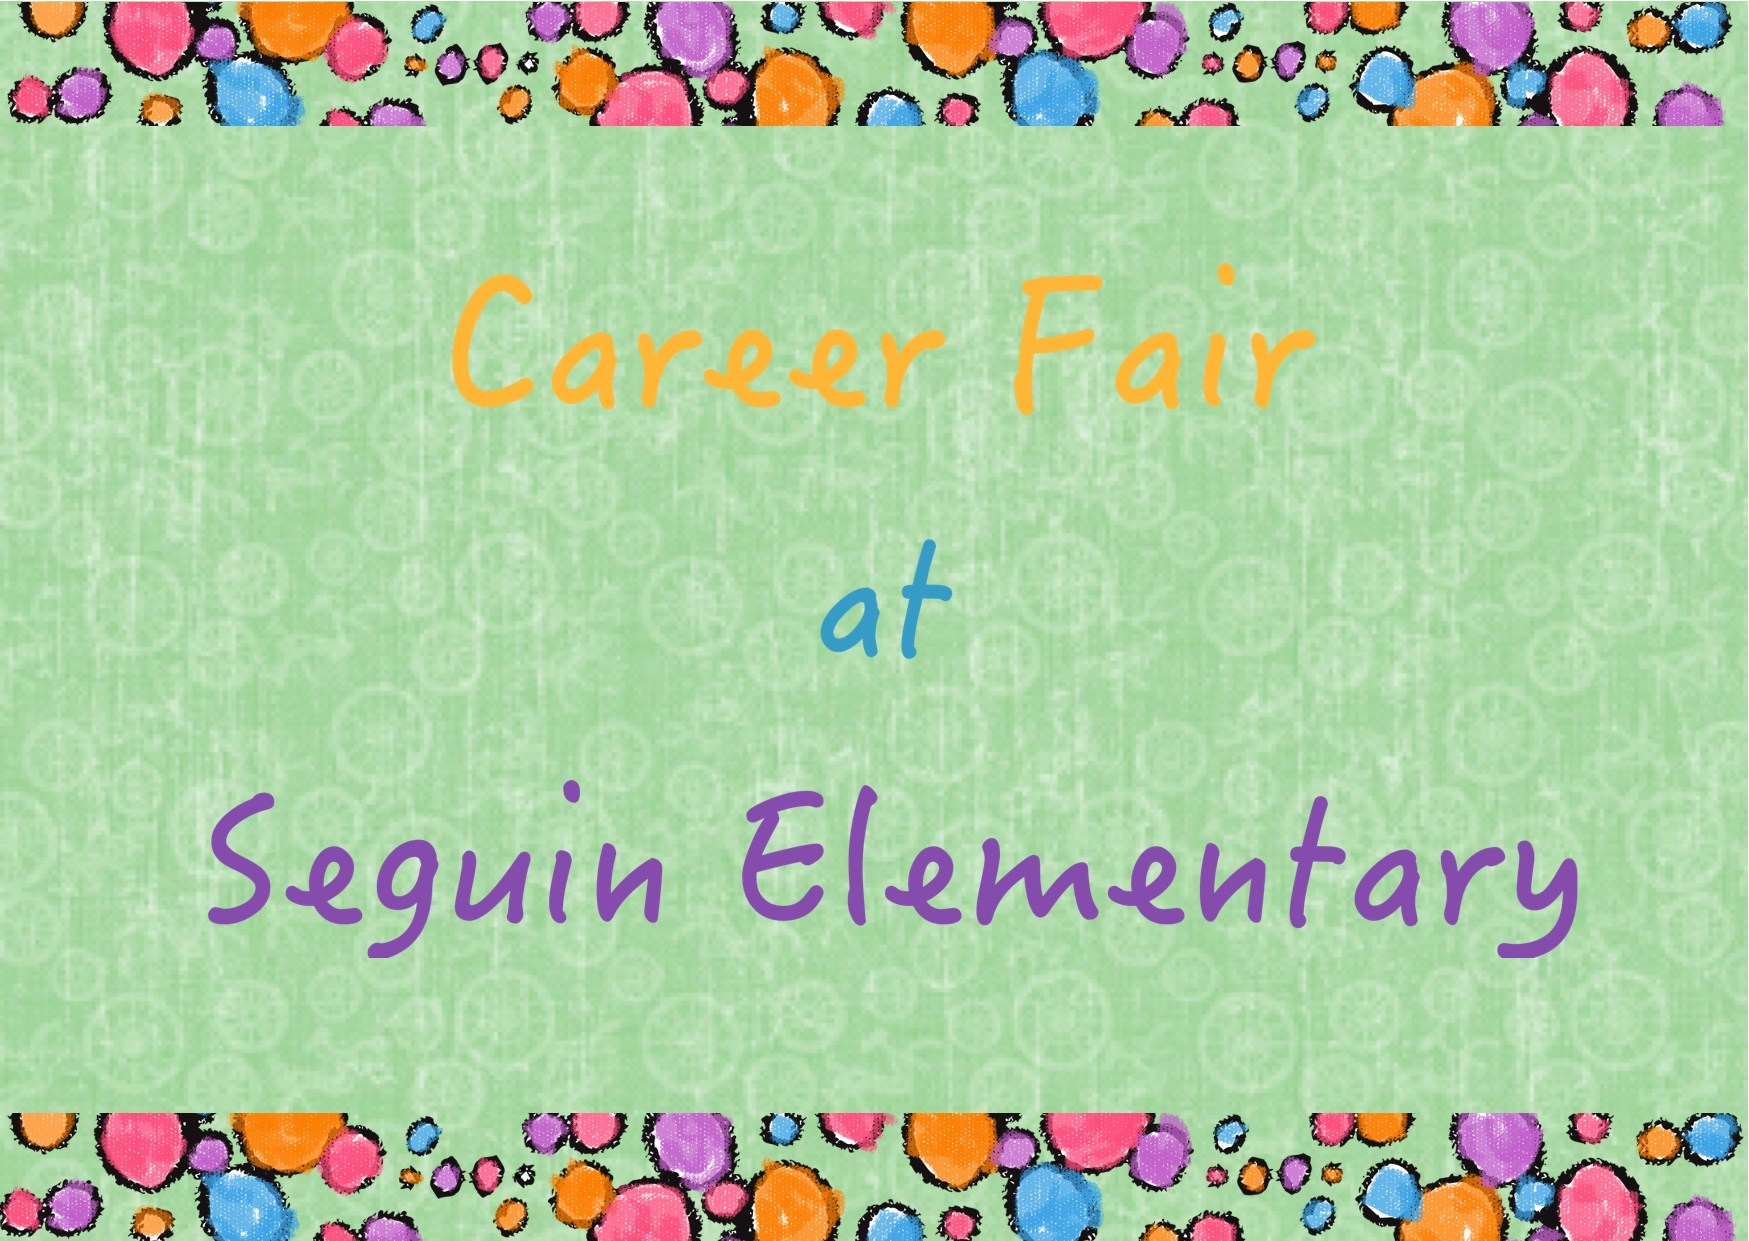 Career Fair at Seguin Elementary